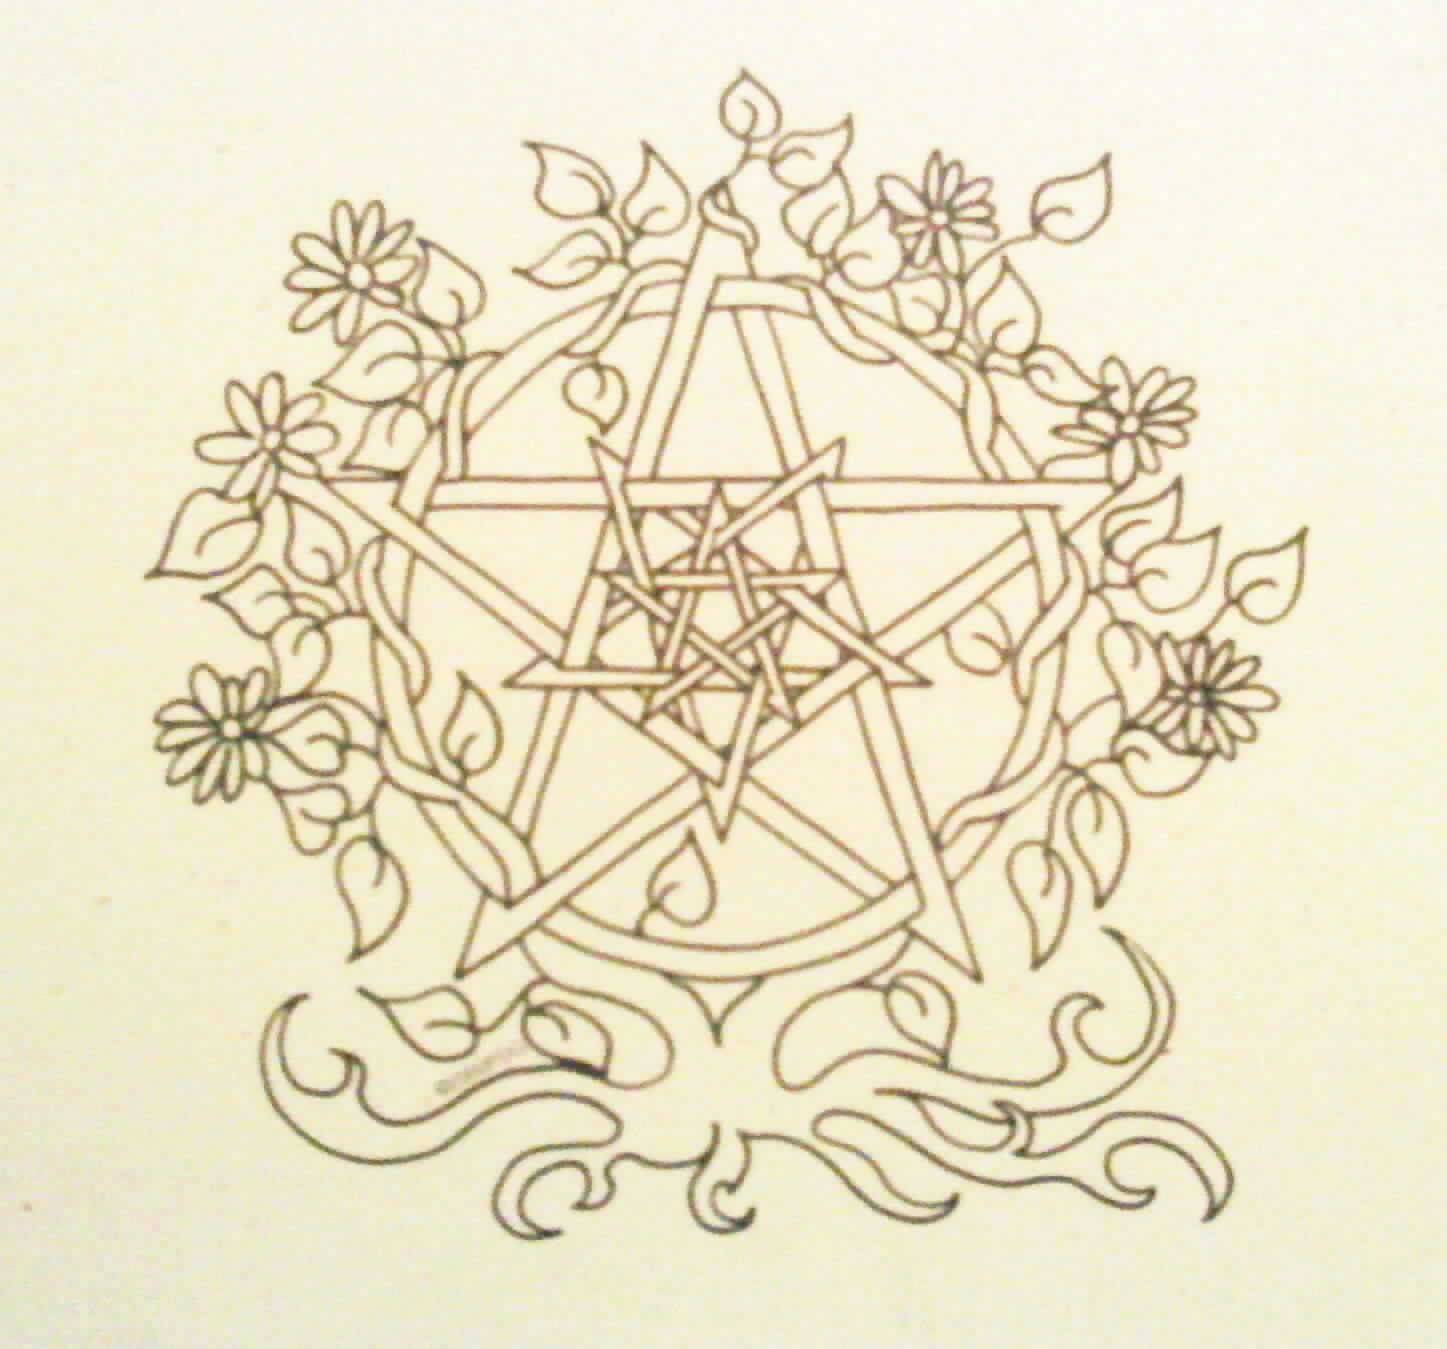 image relating to Printable Wiccan Coloring Pages known as Printable Wiccan Coloring Web pages - Coloring Property